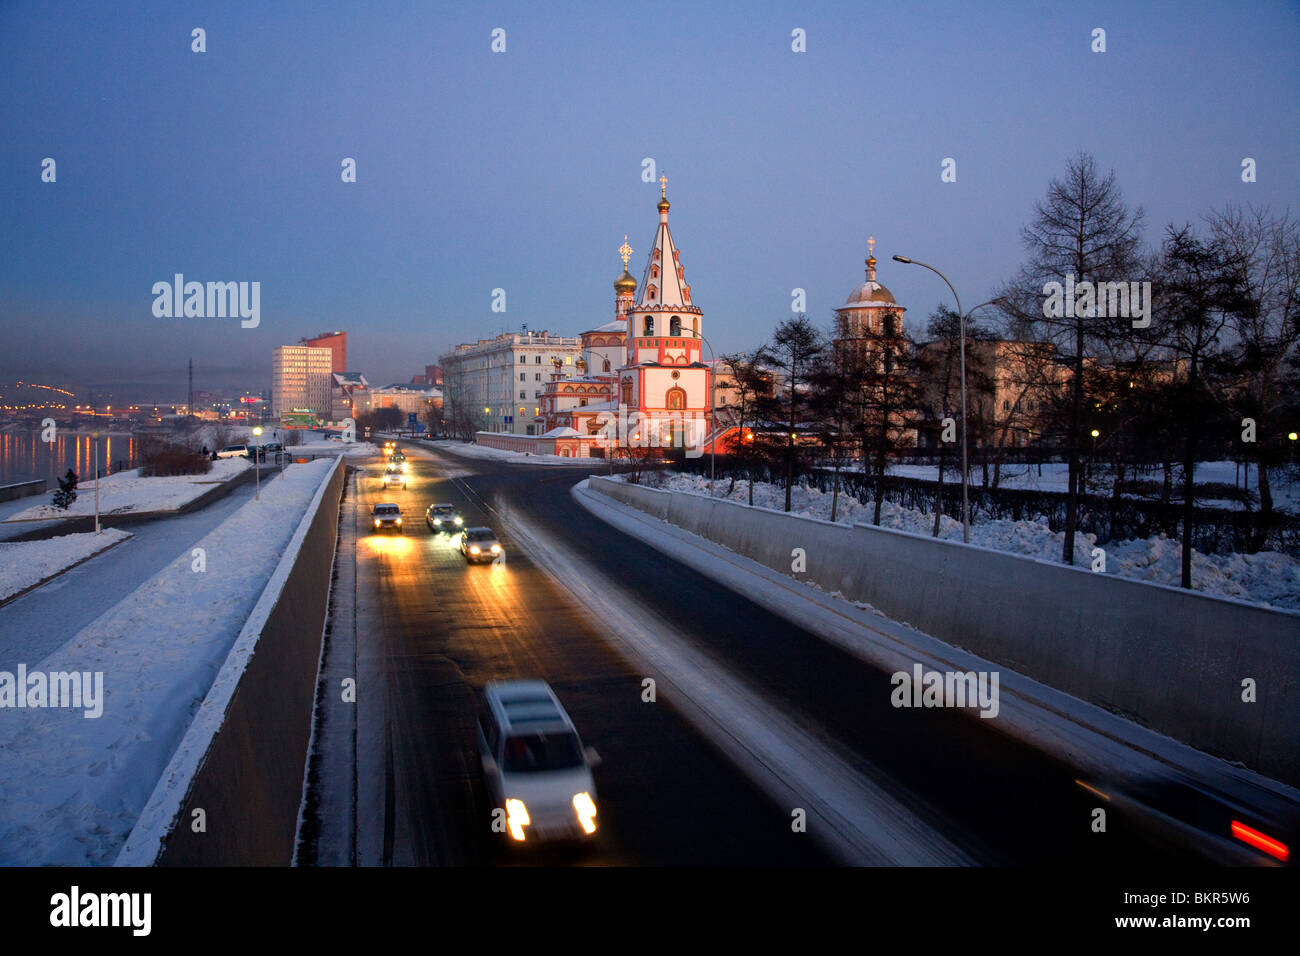 Russia, Siberia, Irkutsk; An Orthodox Church close to river Angara, and cars passing swiftly by. - Stock Image